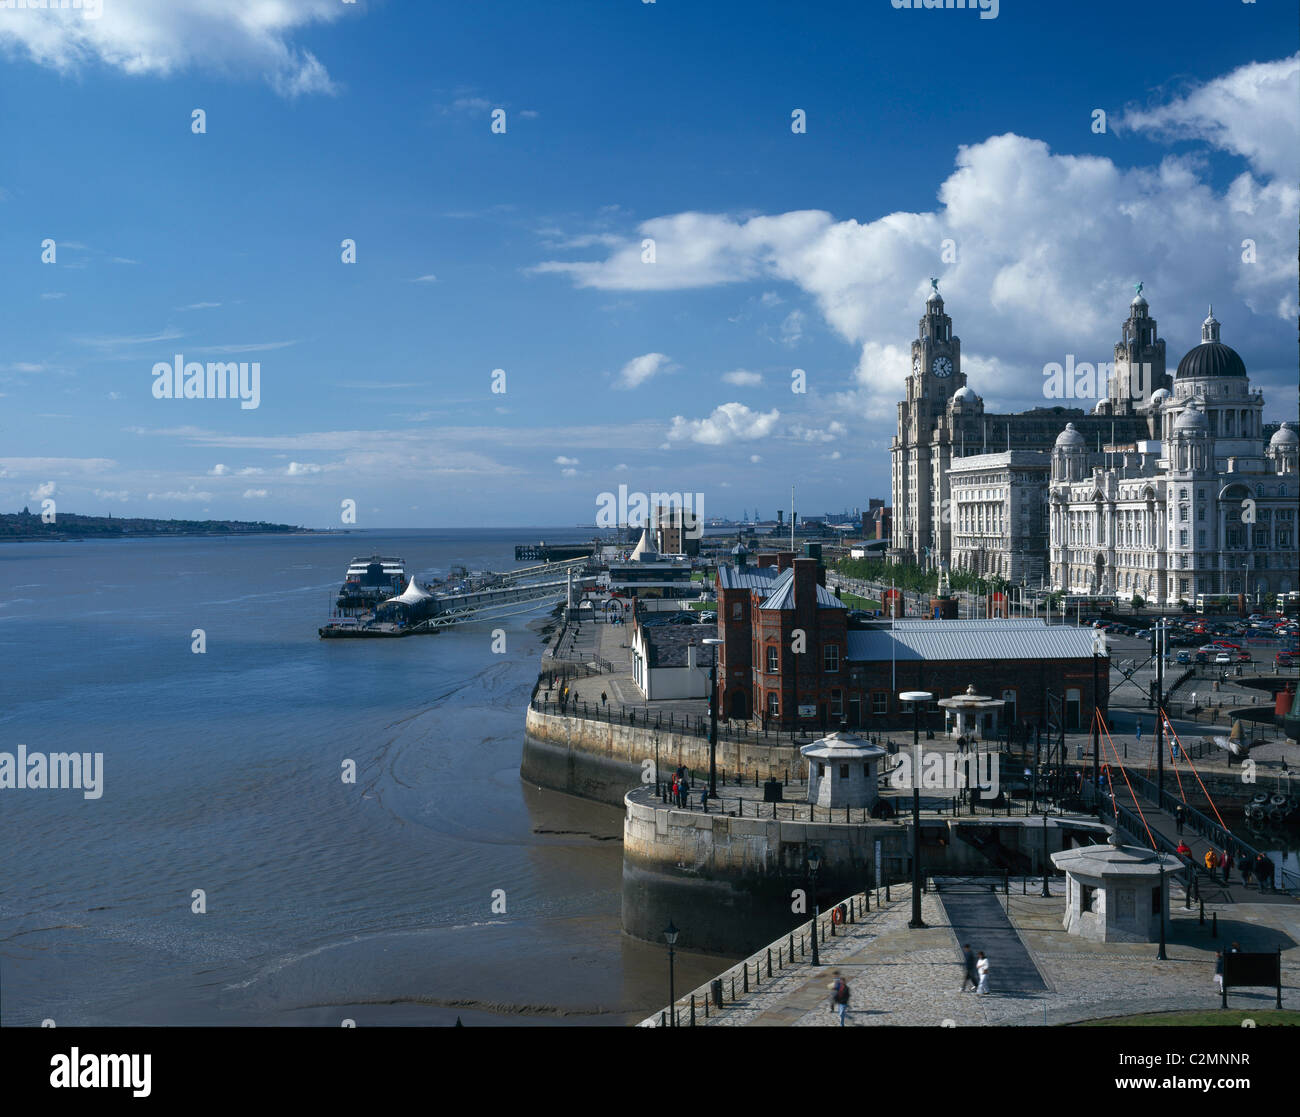 The Royal Liver Building overlooking the River Mersey, Liverpool, 1911. - Stock Image